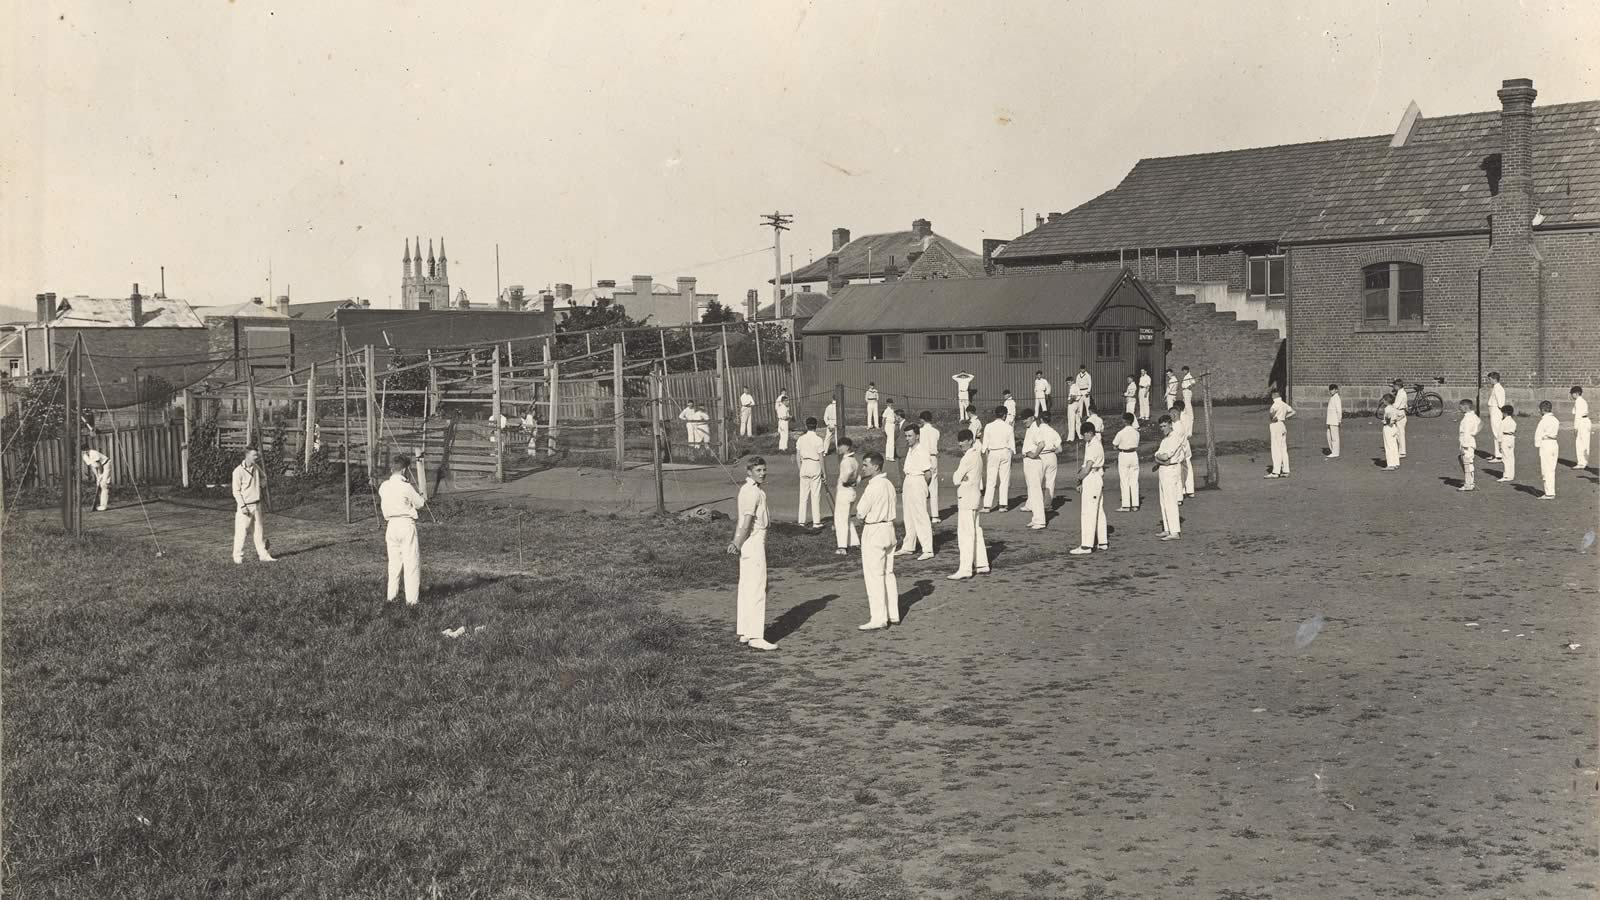 1929 cricket practice at Macquarie Street